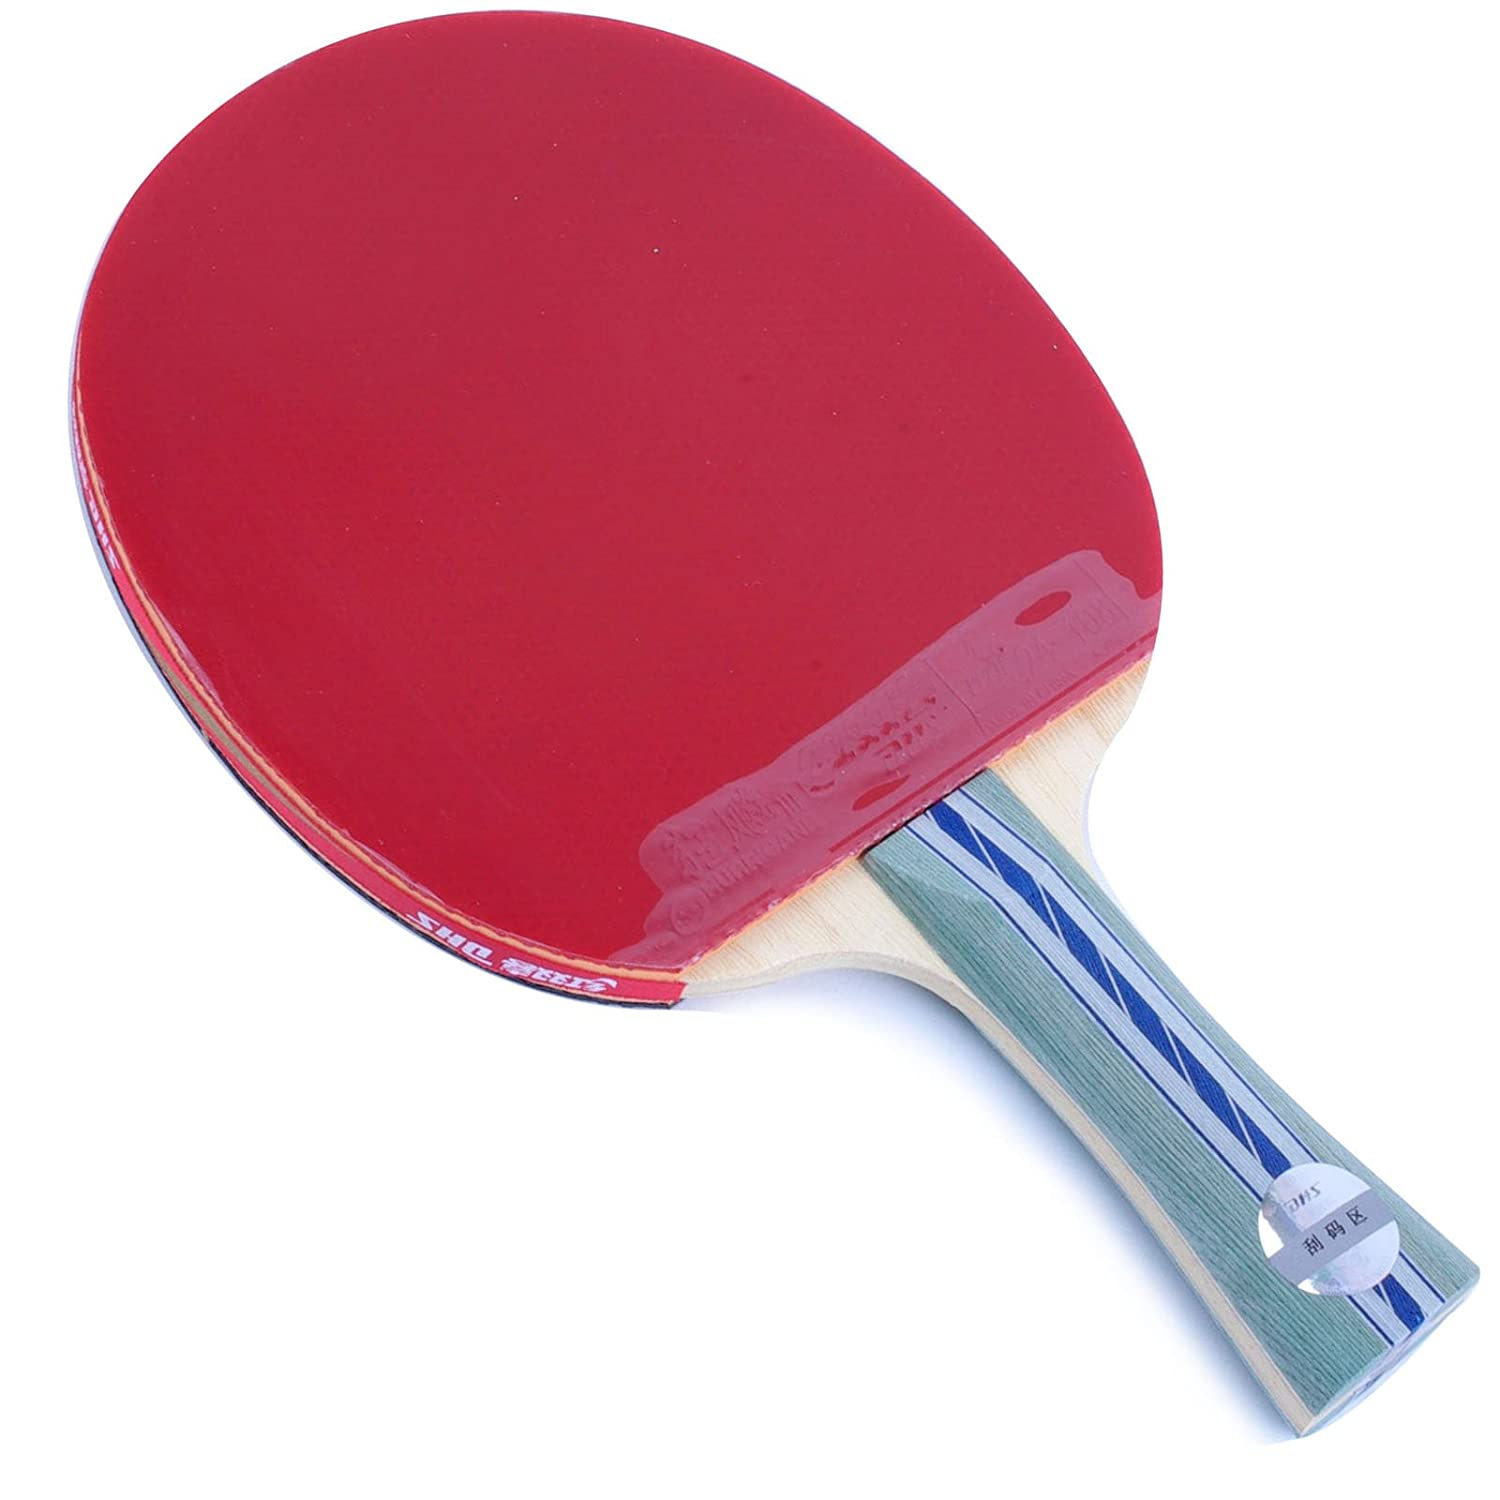 Amazon DHS Ping Pong Paddle A5002 Raqueta Table Tenis Racket Shakehand With Landson Protector Sports Outdoors